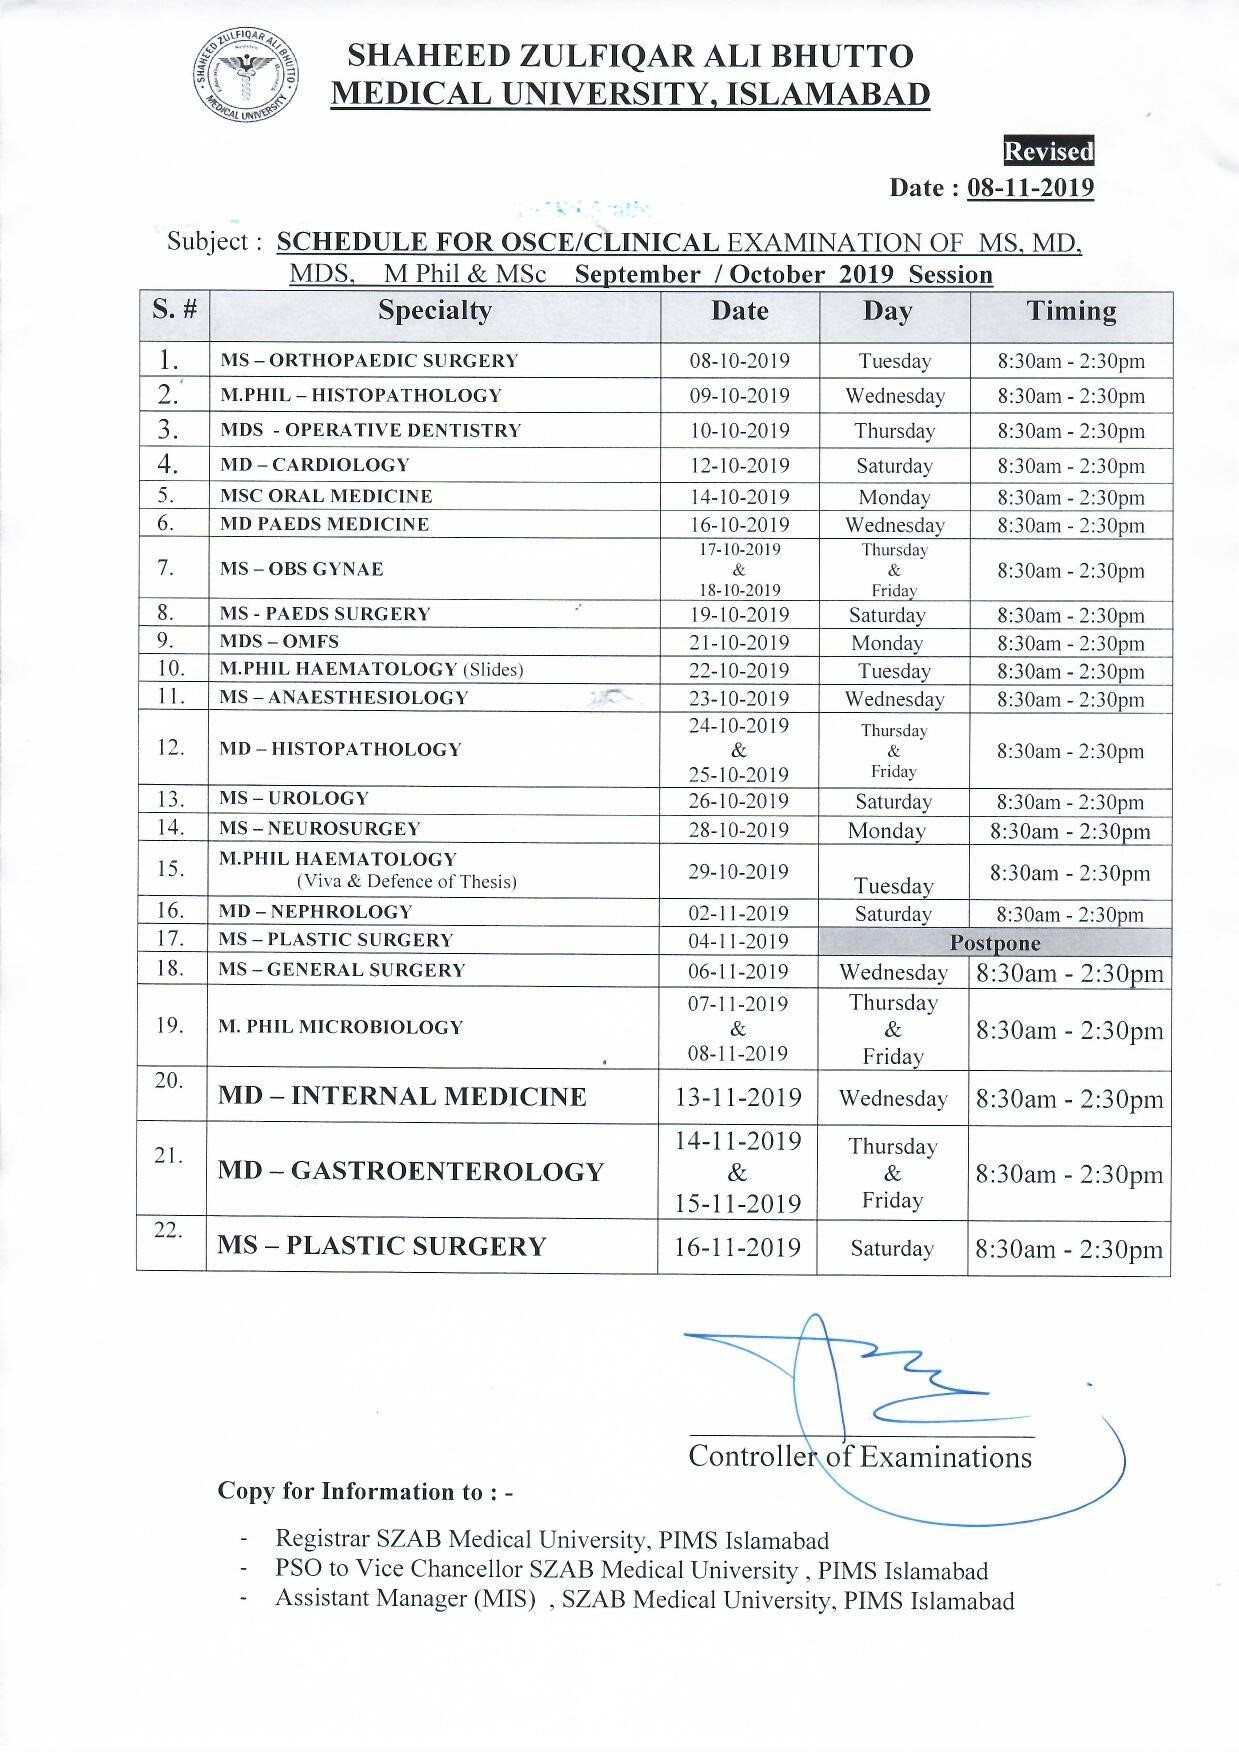 MS, MD, MDS, M.Phil and MSc Clinical Examination Revised Schedule (Revised on 08-11-2019)